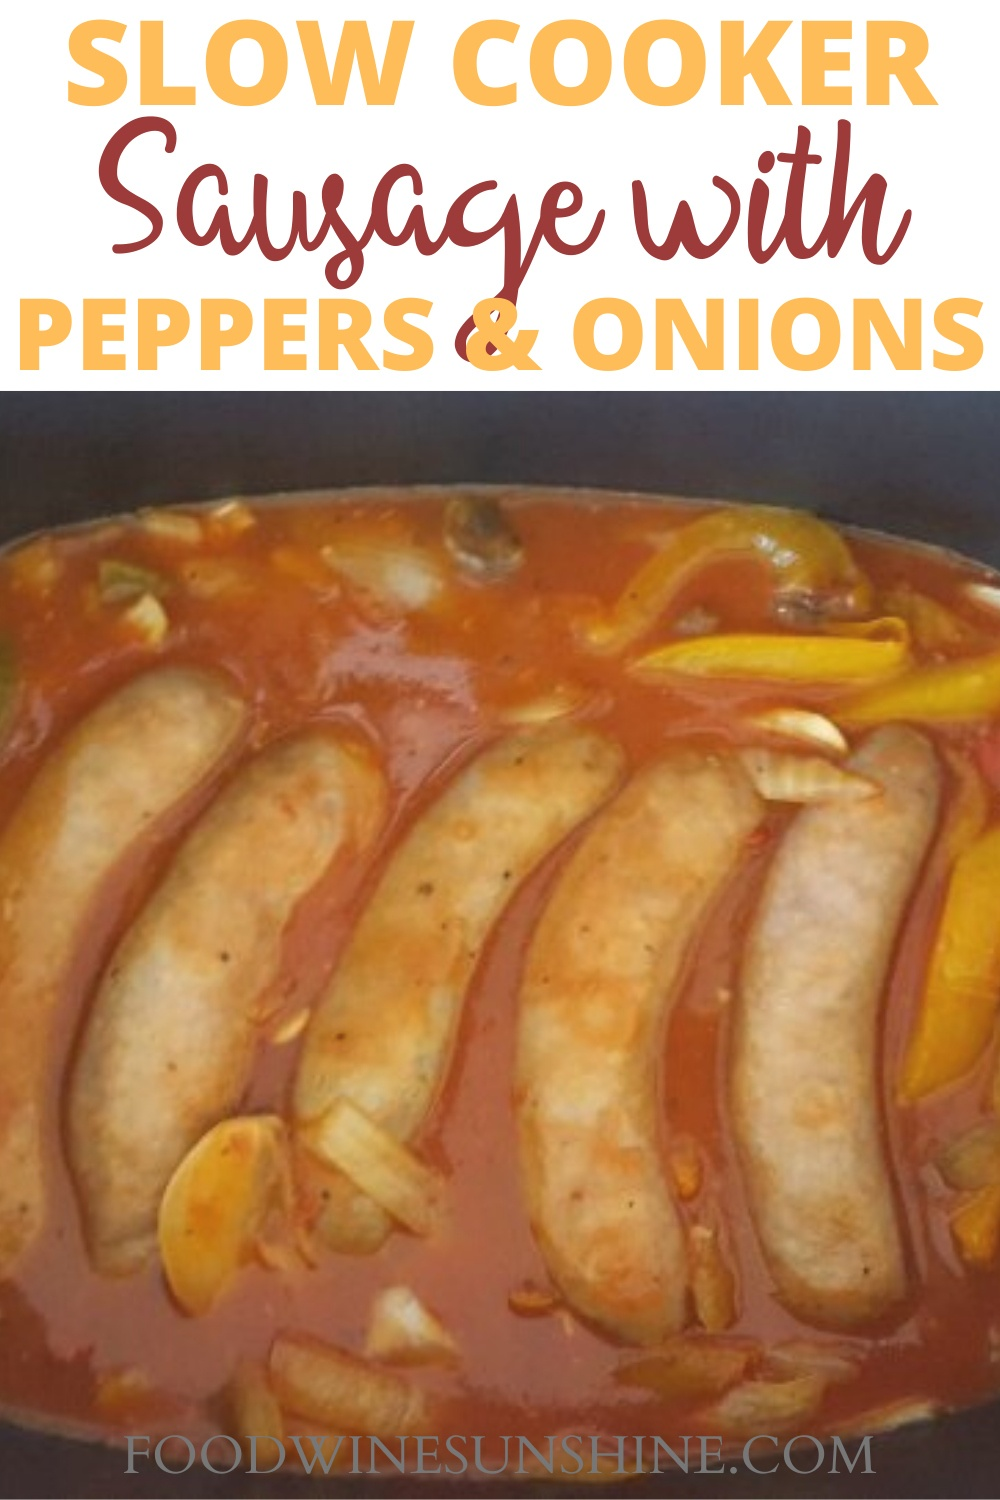 Easy Crock Pot Sausage and Peppers | You can have dinner prepped with just 5 simple ingredients and 5 minutes with this easy Crock Pot Sausage and Peppers recipe. Read more dinner recipes, healthy recipes and easy recipes the whole family will love on foodwinesunshine.com | Food Wine Sunshine #easyrecipes #dinnerrecipes #dinnerideas #dinner #foodblog #foodblogger